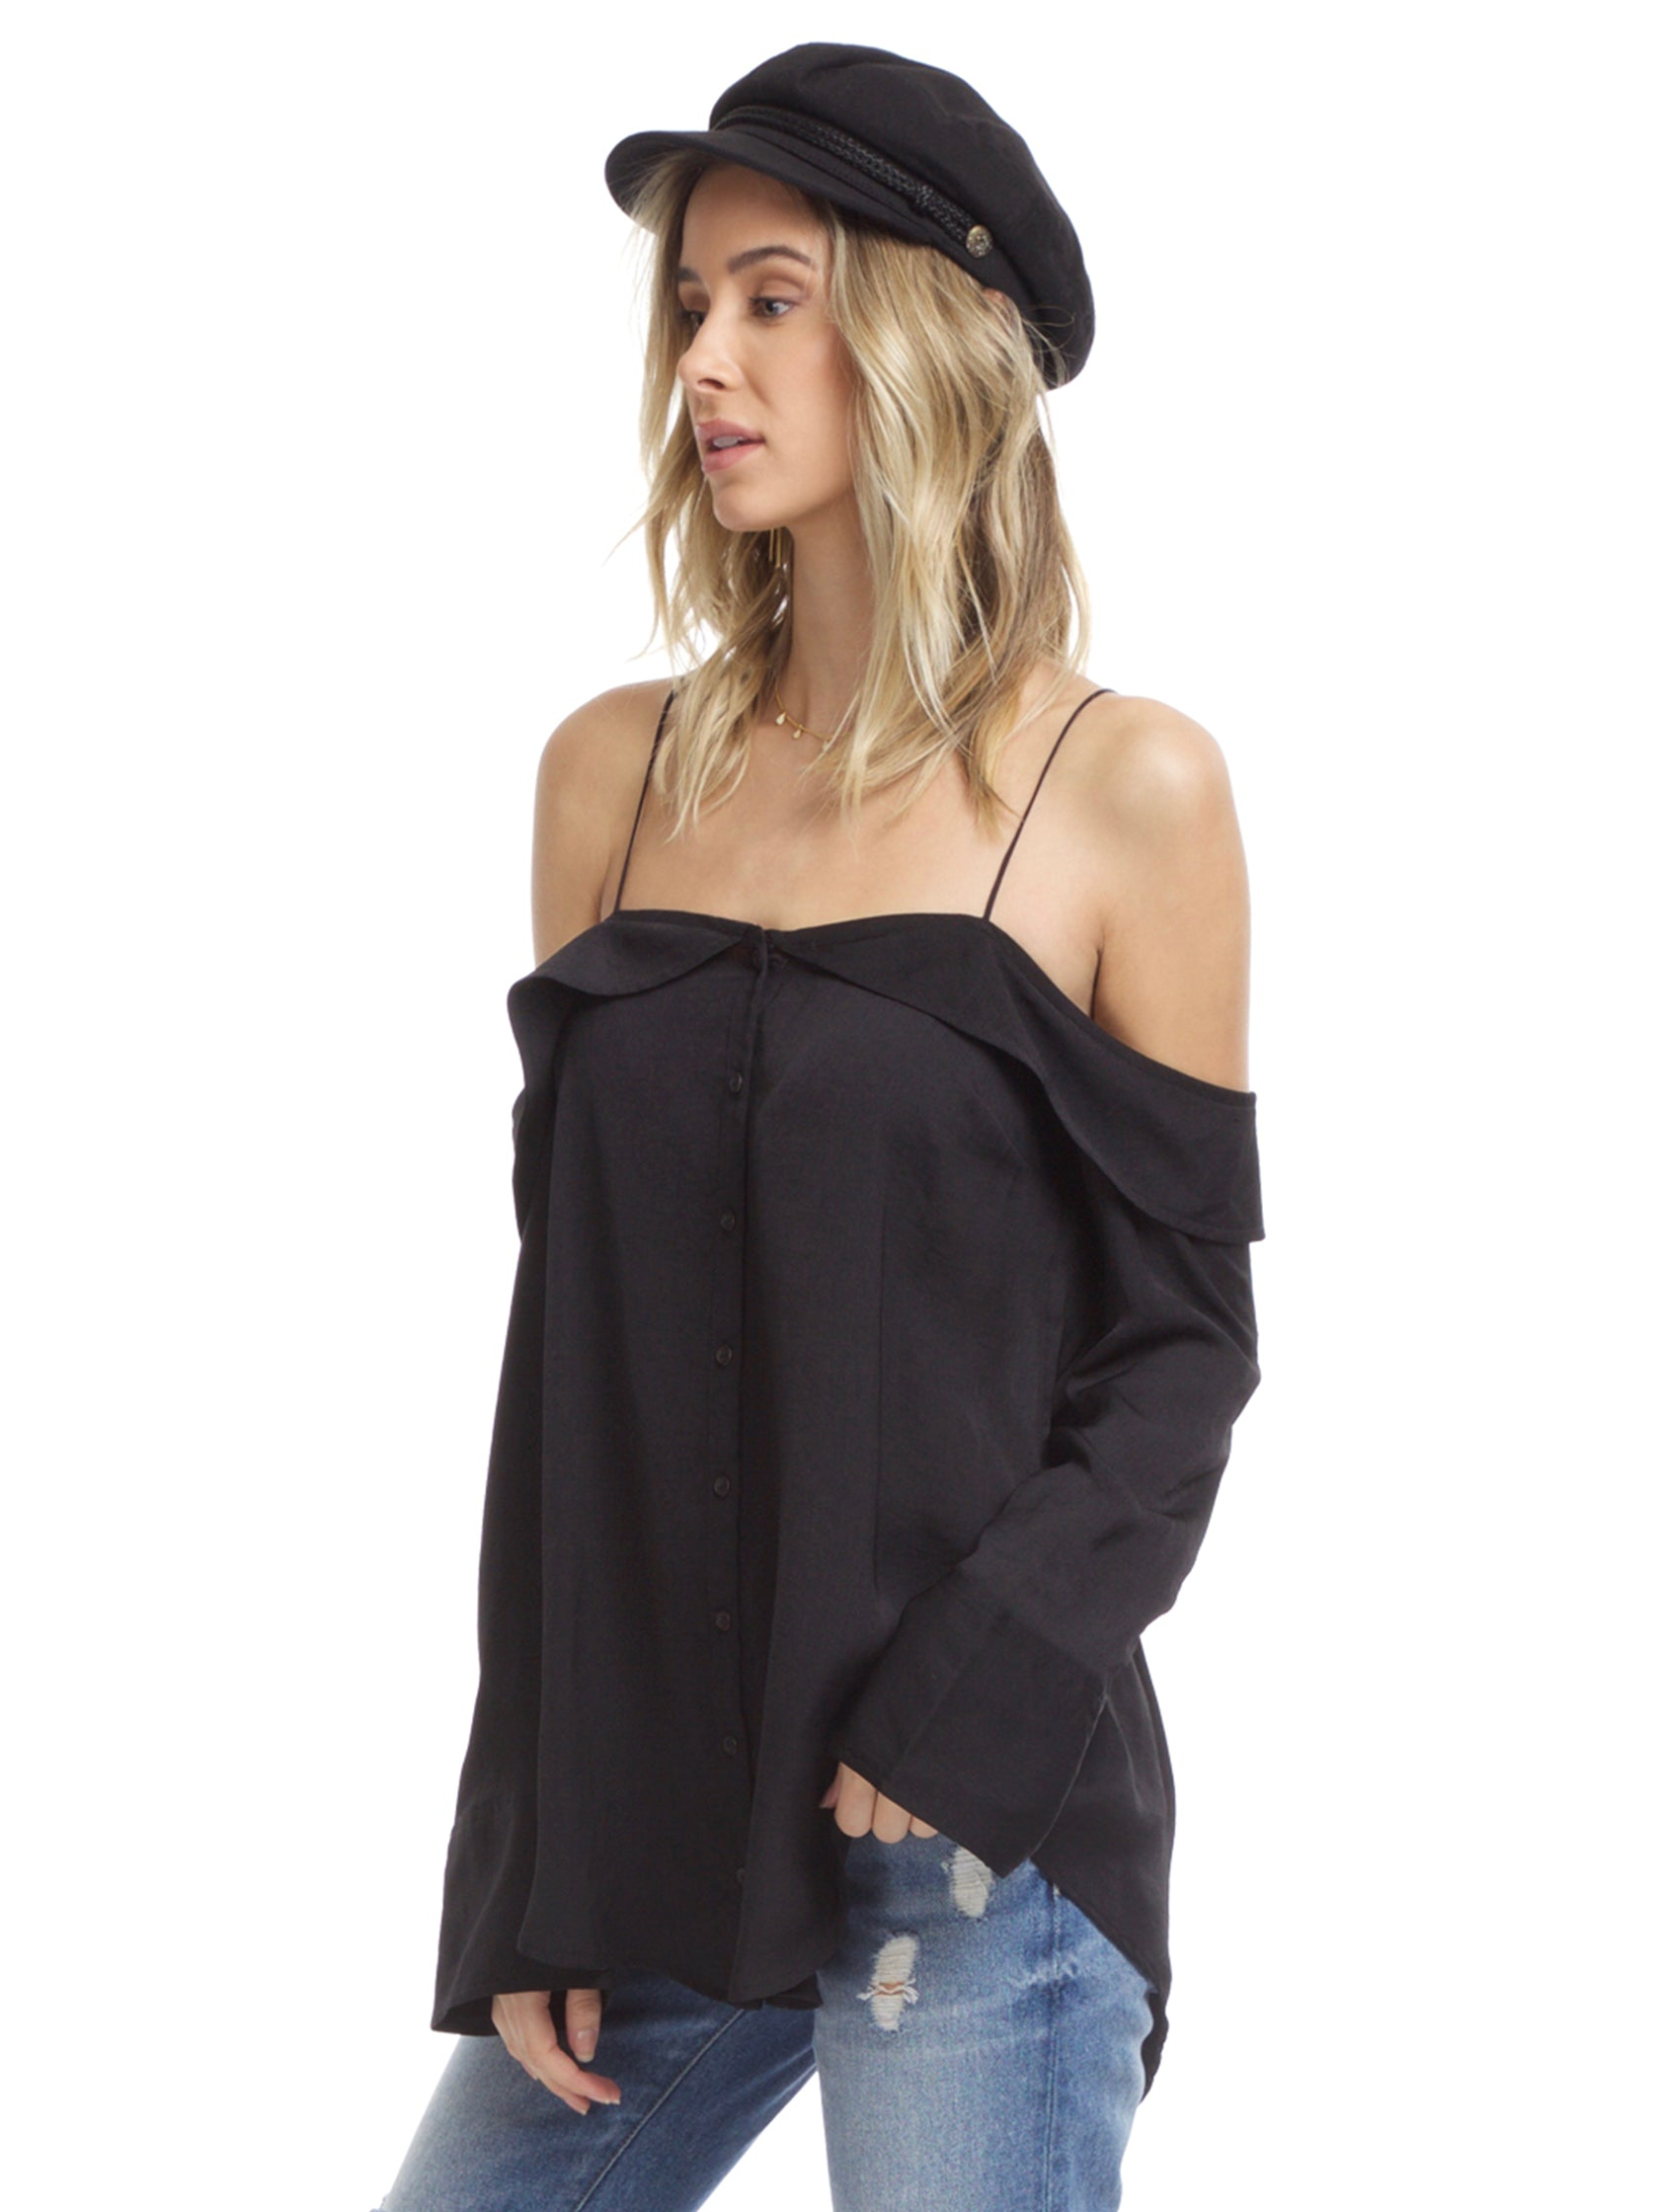 Women wearing a top rental from Free People called Walk This Way Buttondown Top